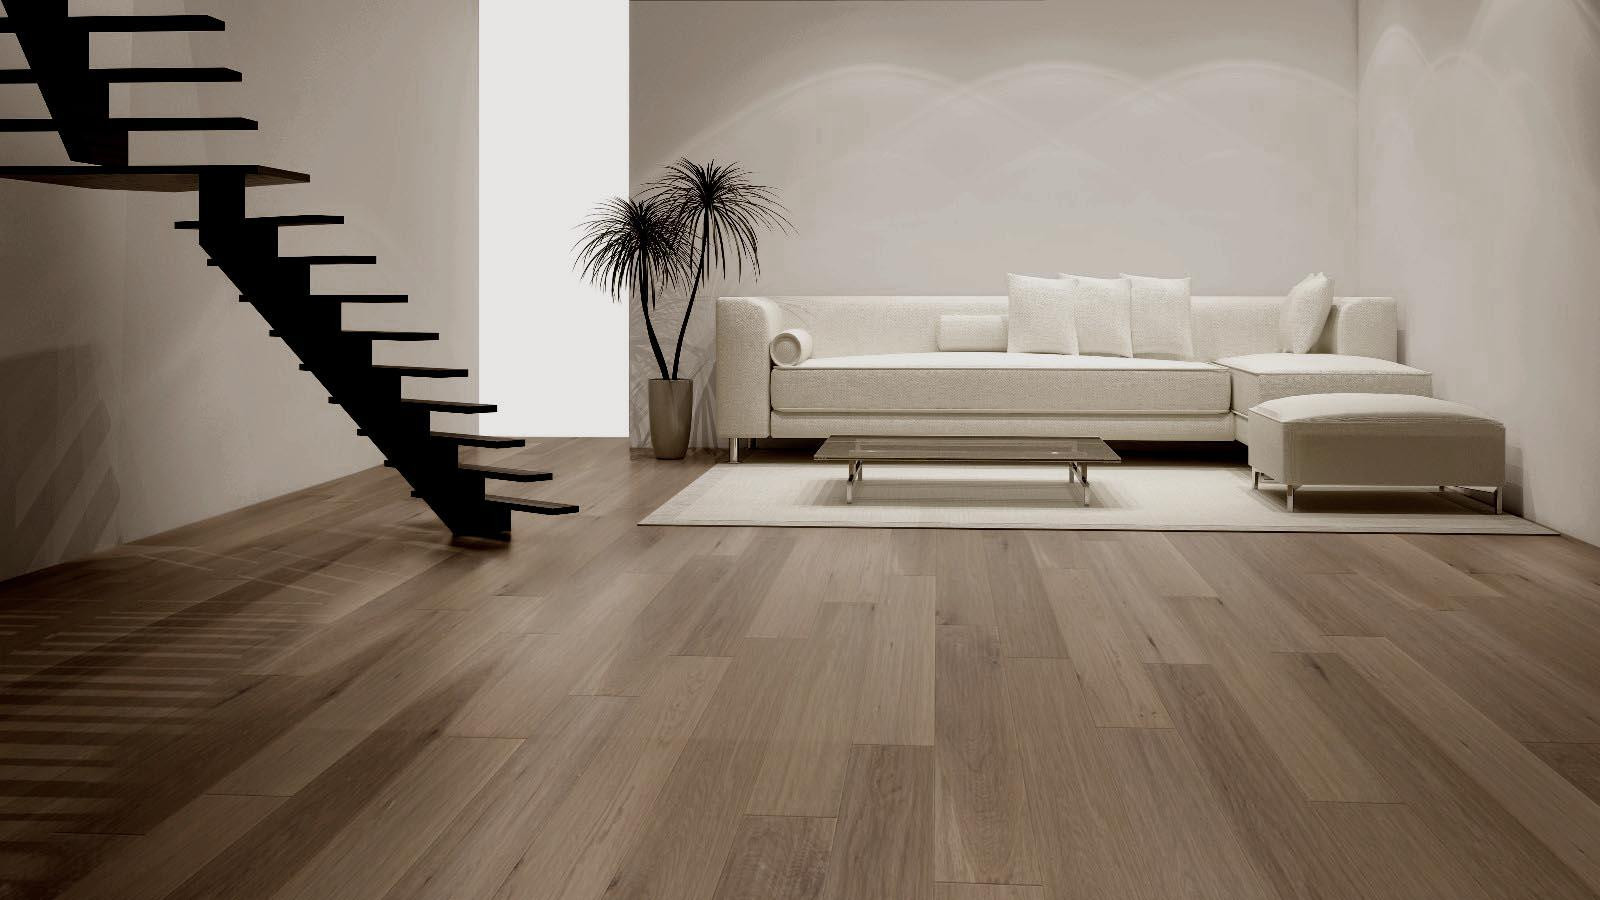 mohawk hardwood floor cleaner reviews of mohawk amber 9 wide glue down luxury vinyl plank flooring in mohawk amber 9 wide glue down luxury vinyl plank flooring room